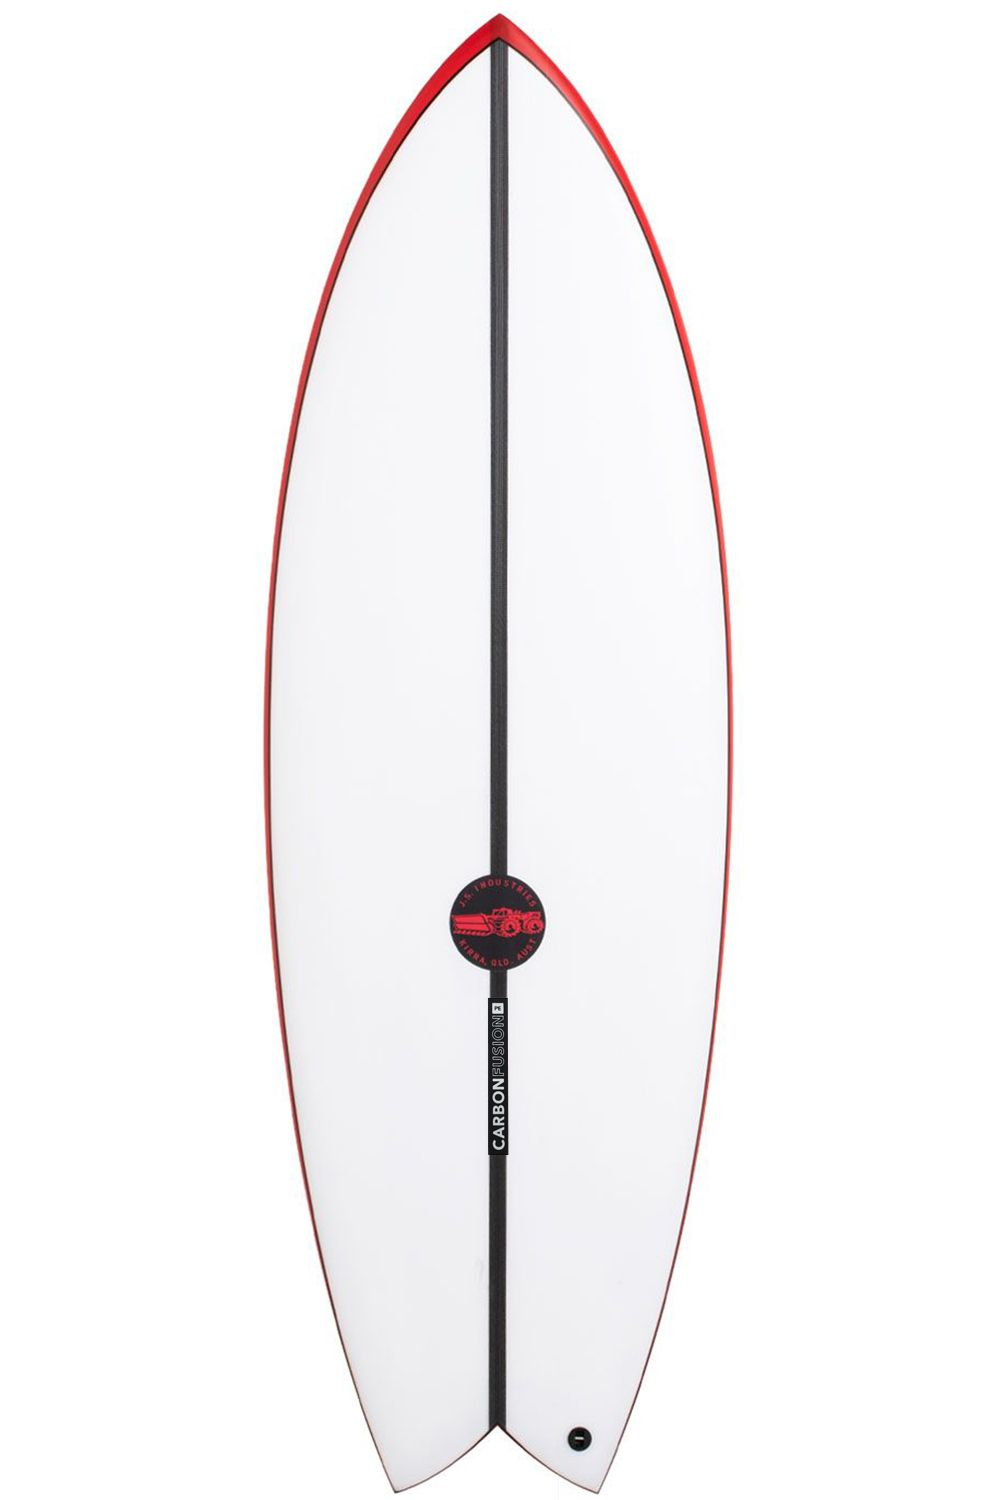 Prancha Surf JS 5'5 RED BARON PE Swallow Tail - White FCS II Twin Tab 5ft5